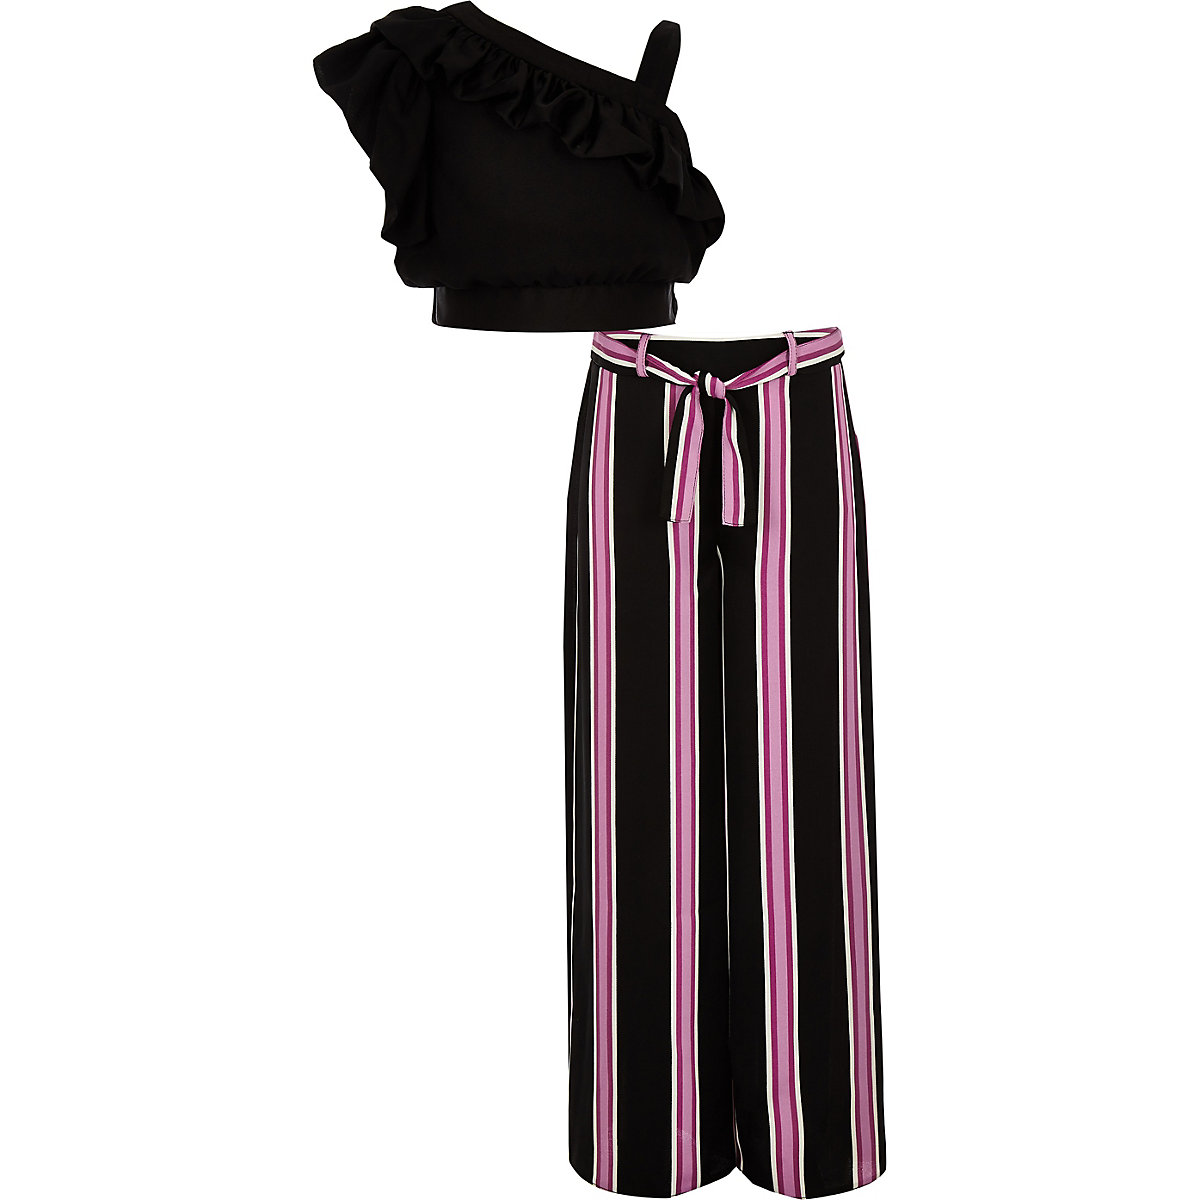 Girls black frill crop top and pant outfit